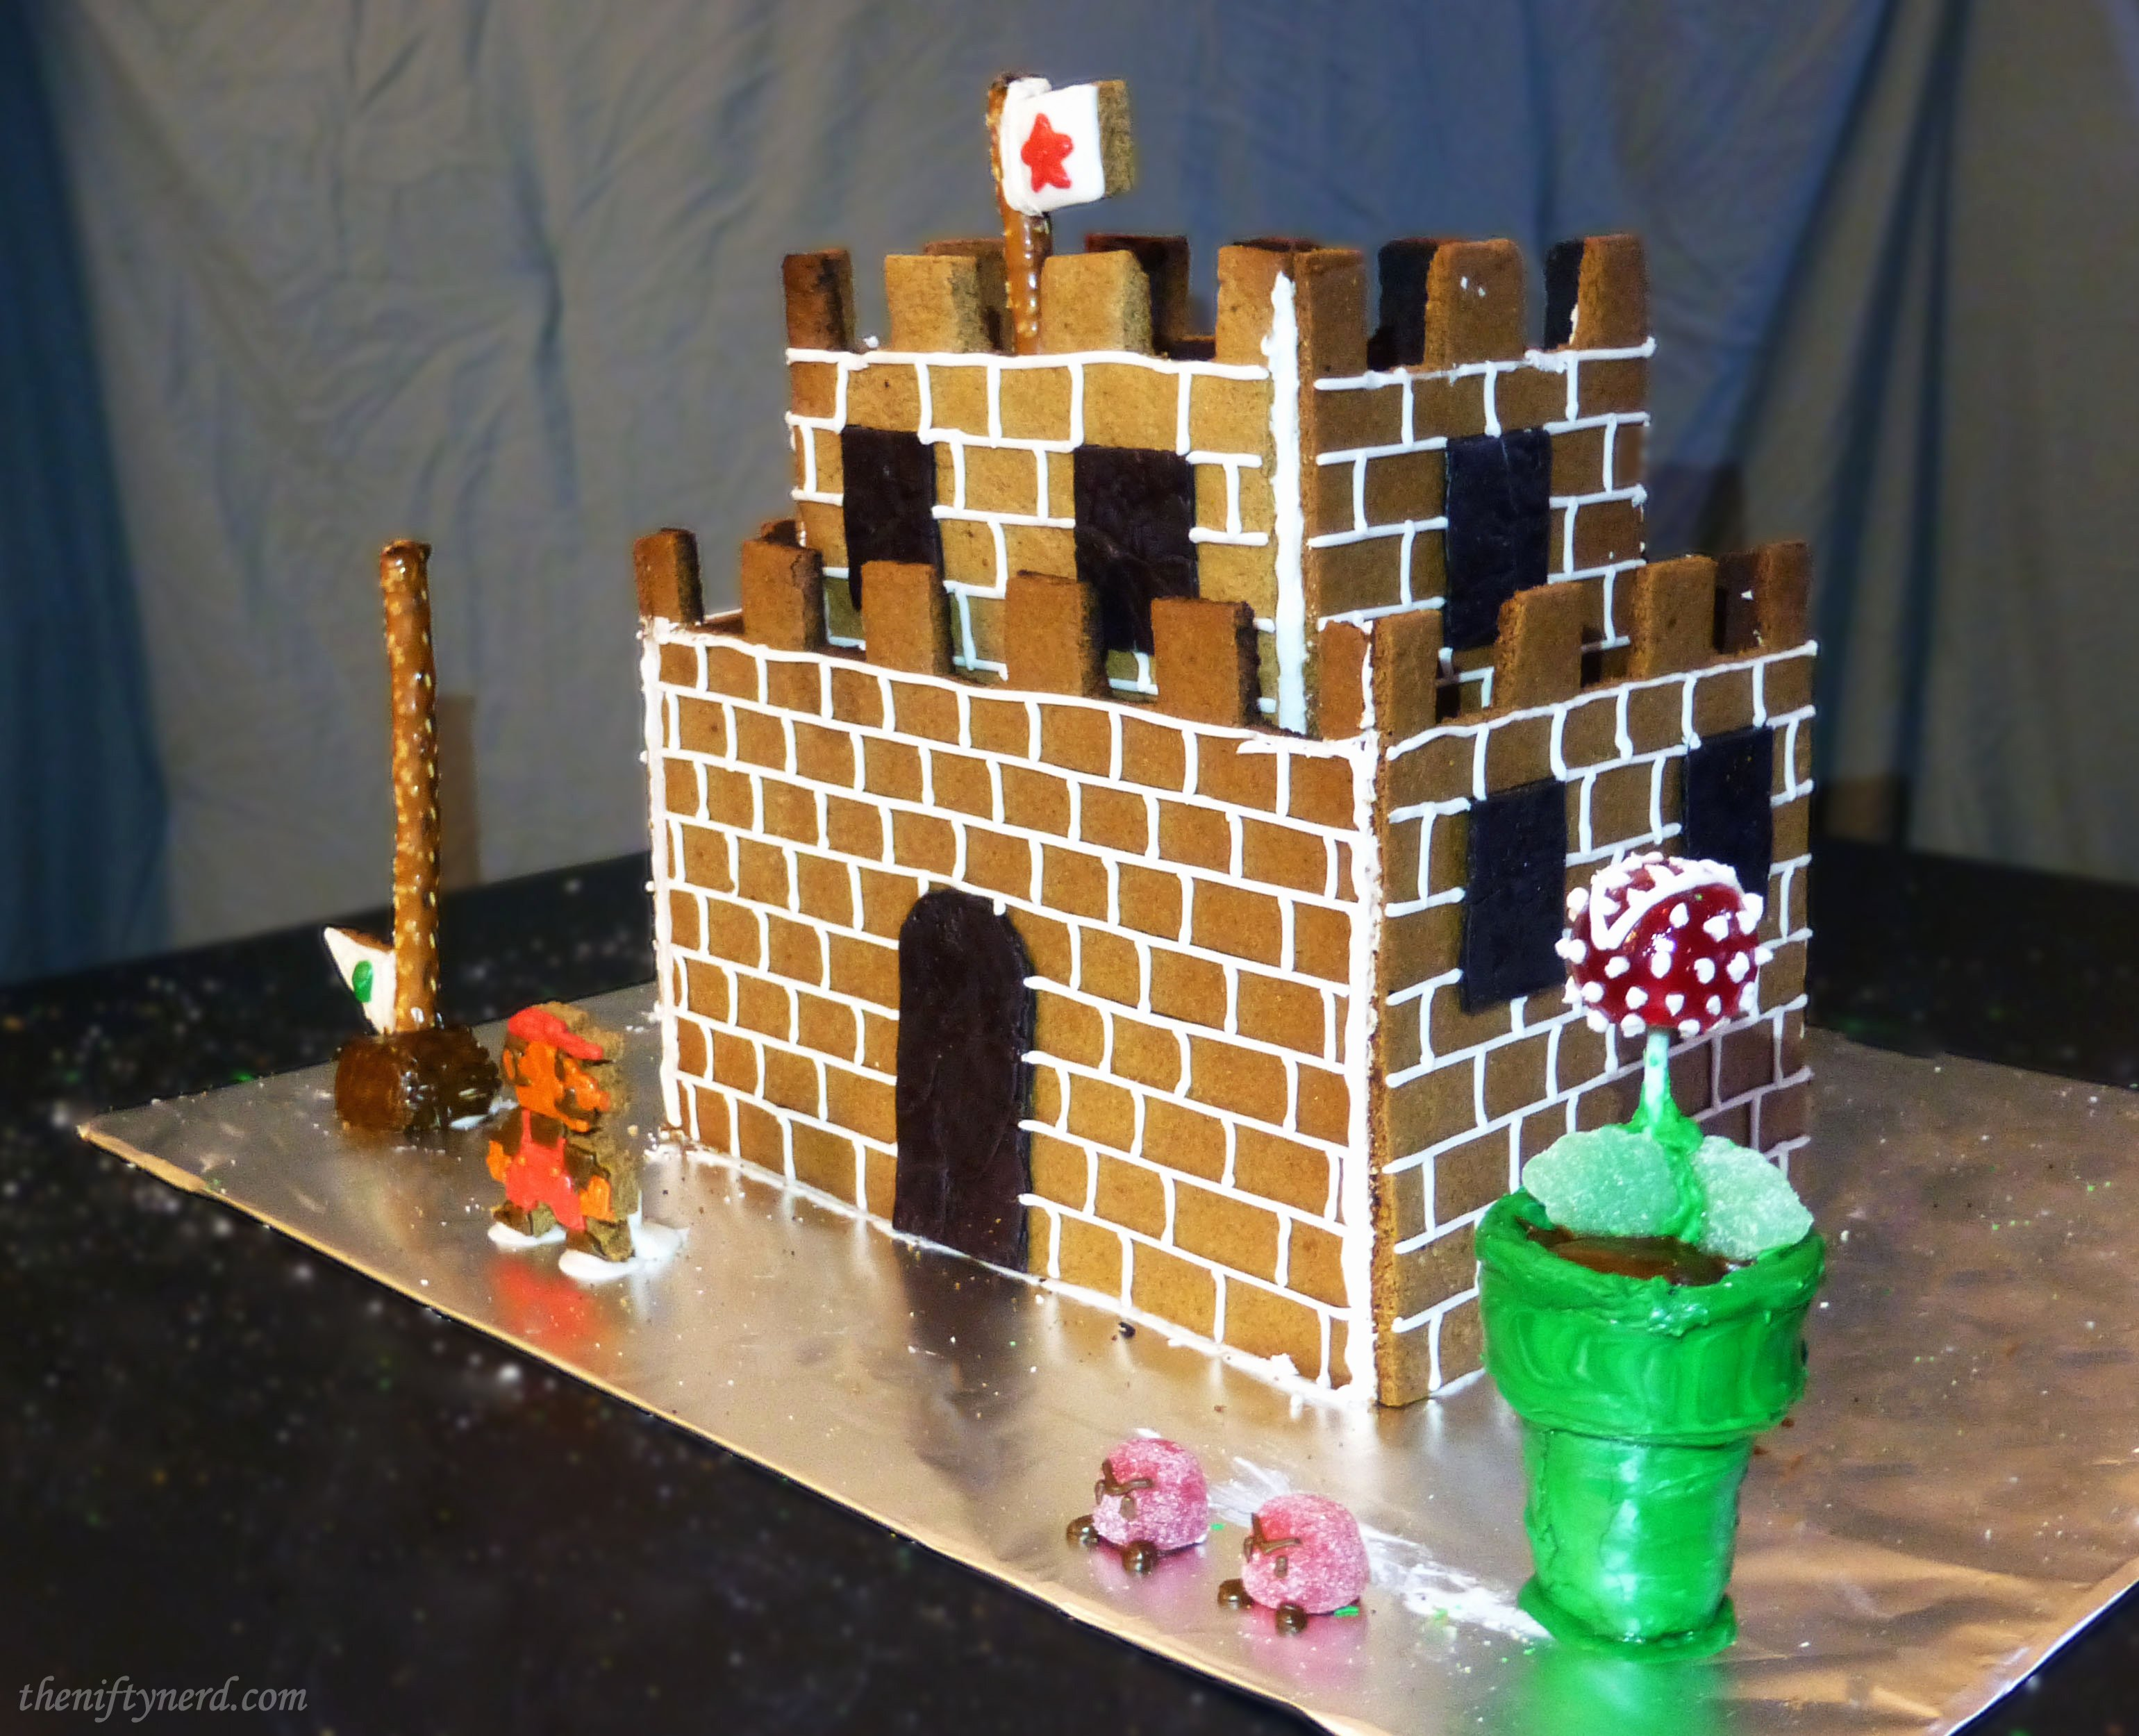 Gingerbread Castle Template Inspirational Super Mario Castle Gingerbread House Tutorial & Printable